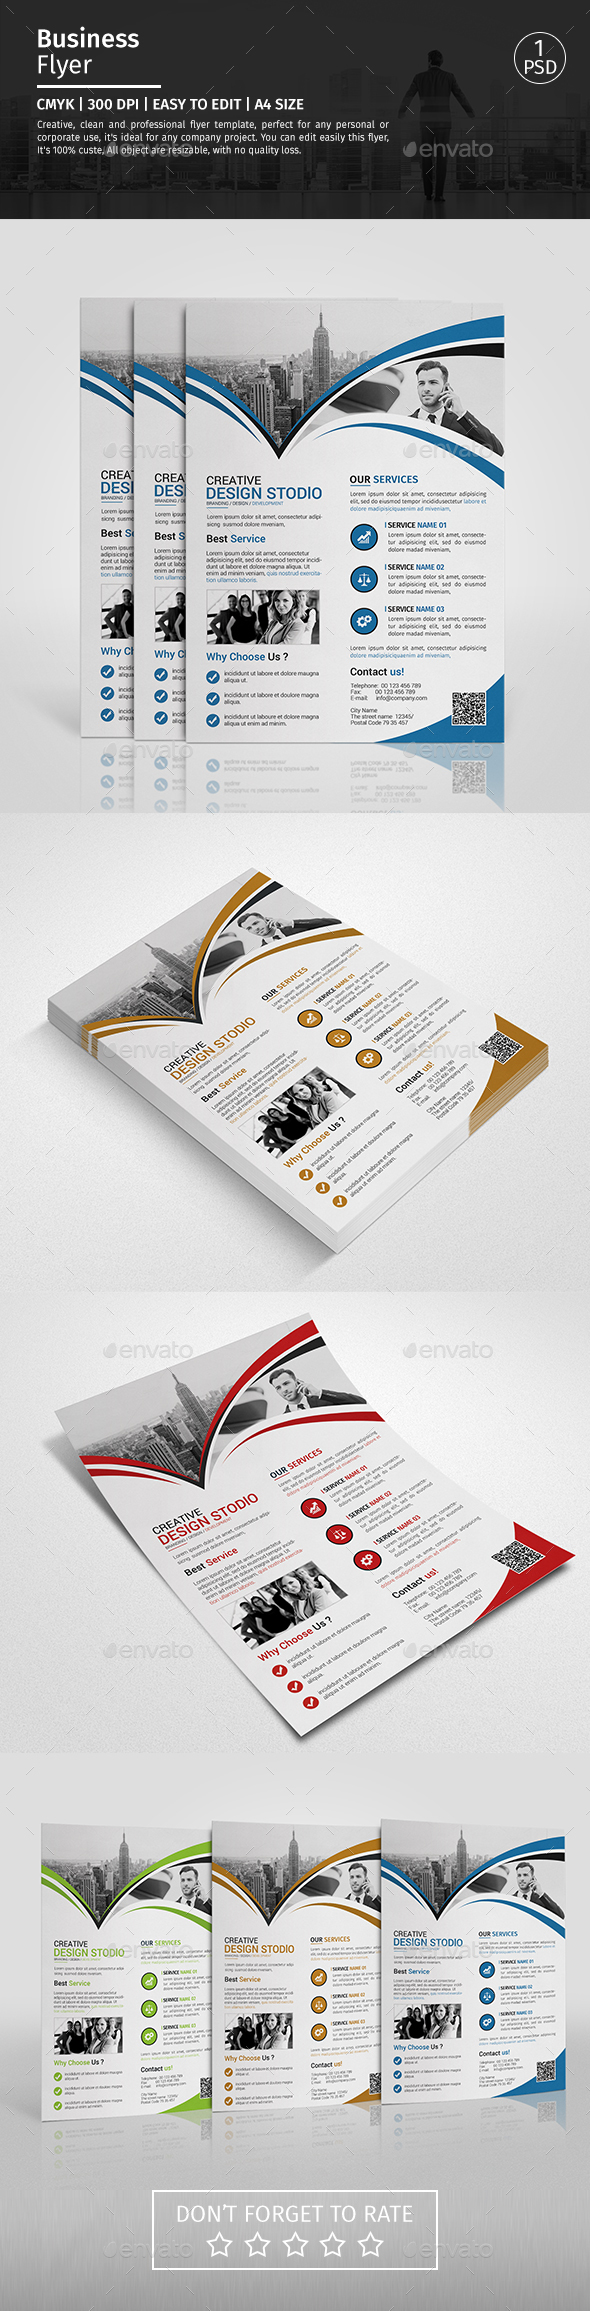 A4 Corporate Business Flyer Template Vol 10 - Corporate Flyers